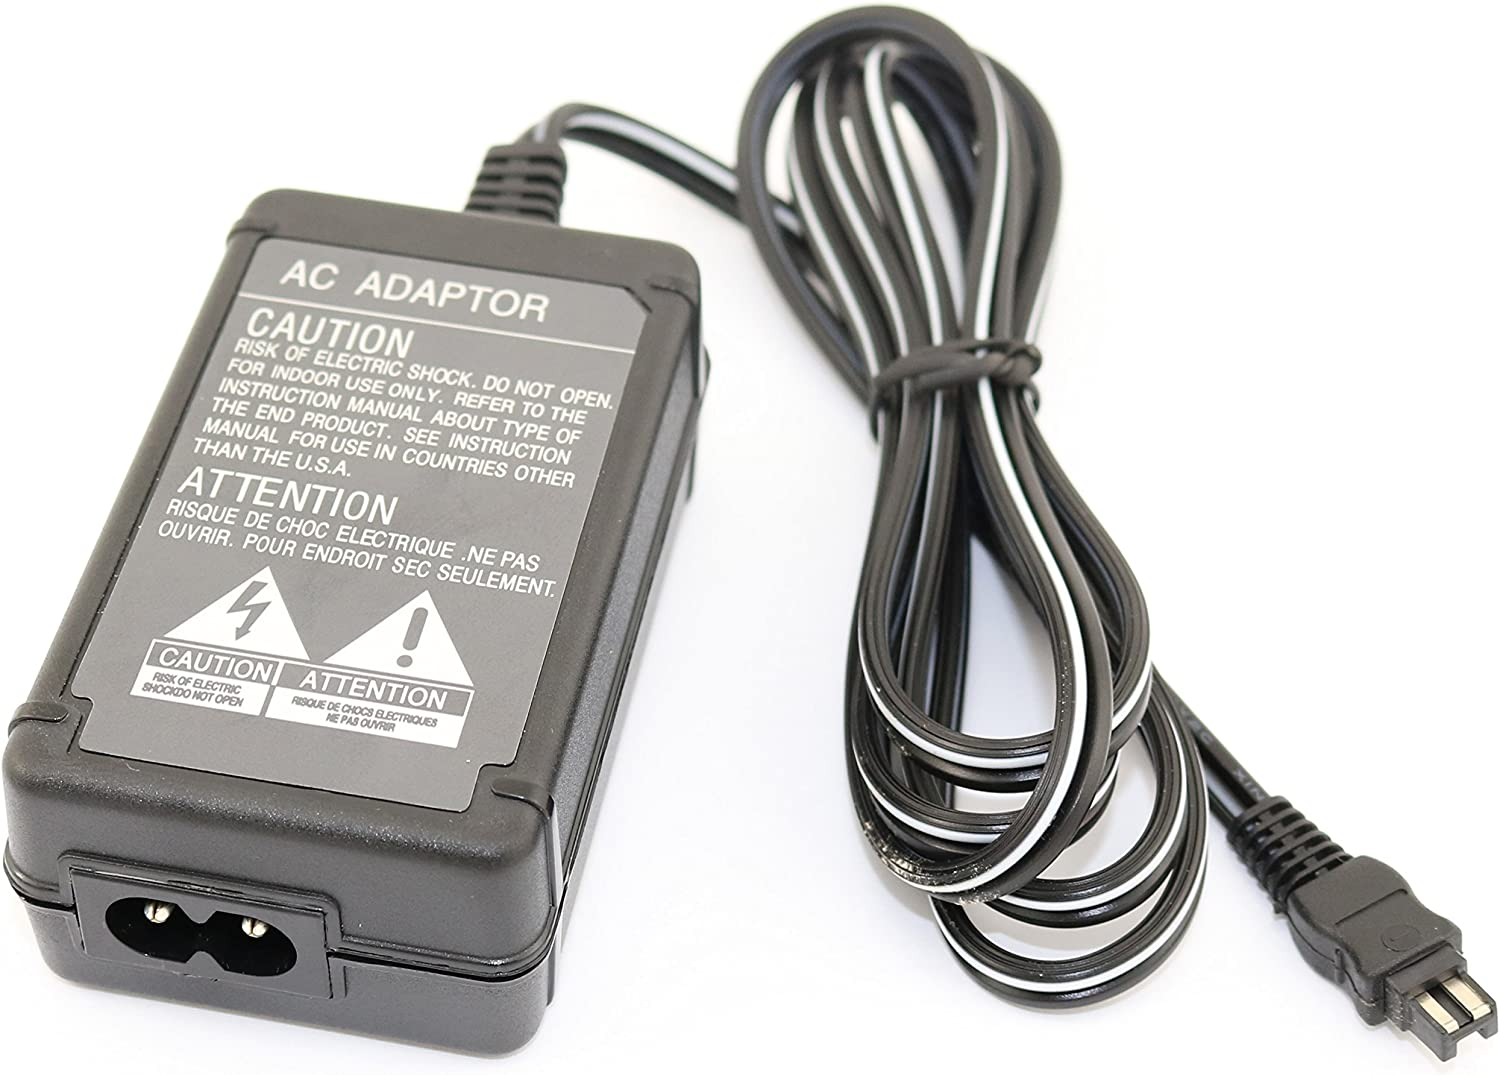 Super Power Supply AC//DC Adapter Charger for Sony HandyCam HDR-CX11 HDR-CX115E HDR-CX12 Camcorder